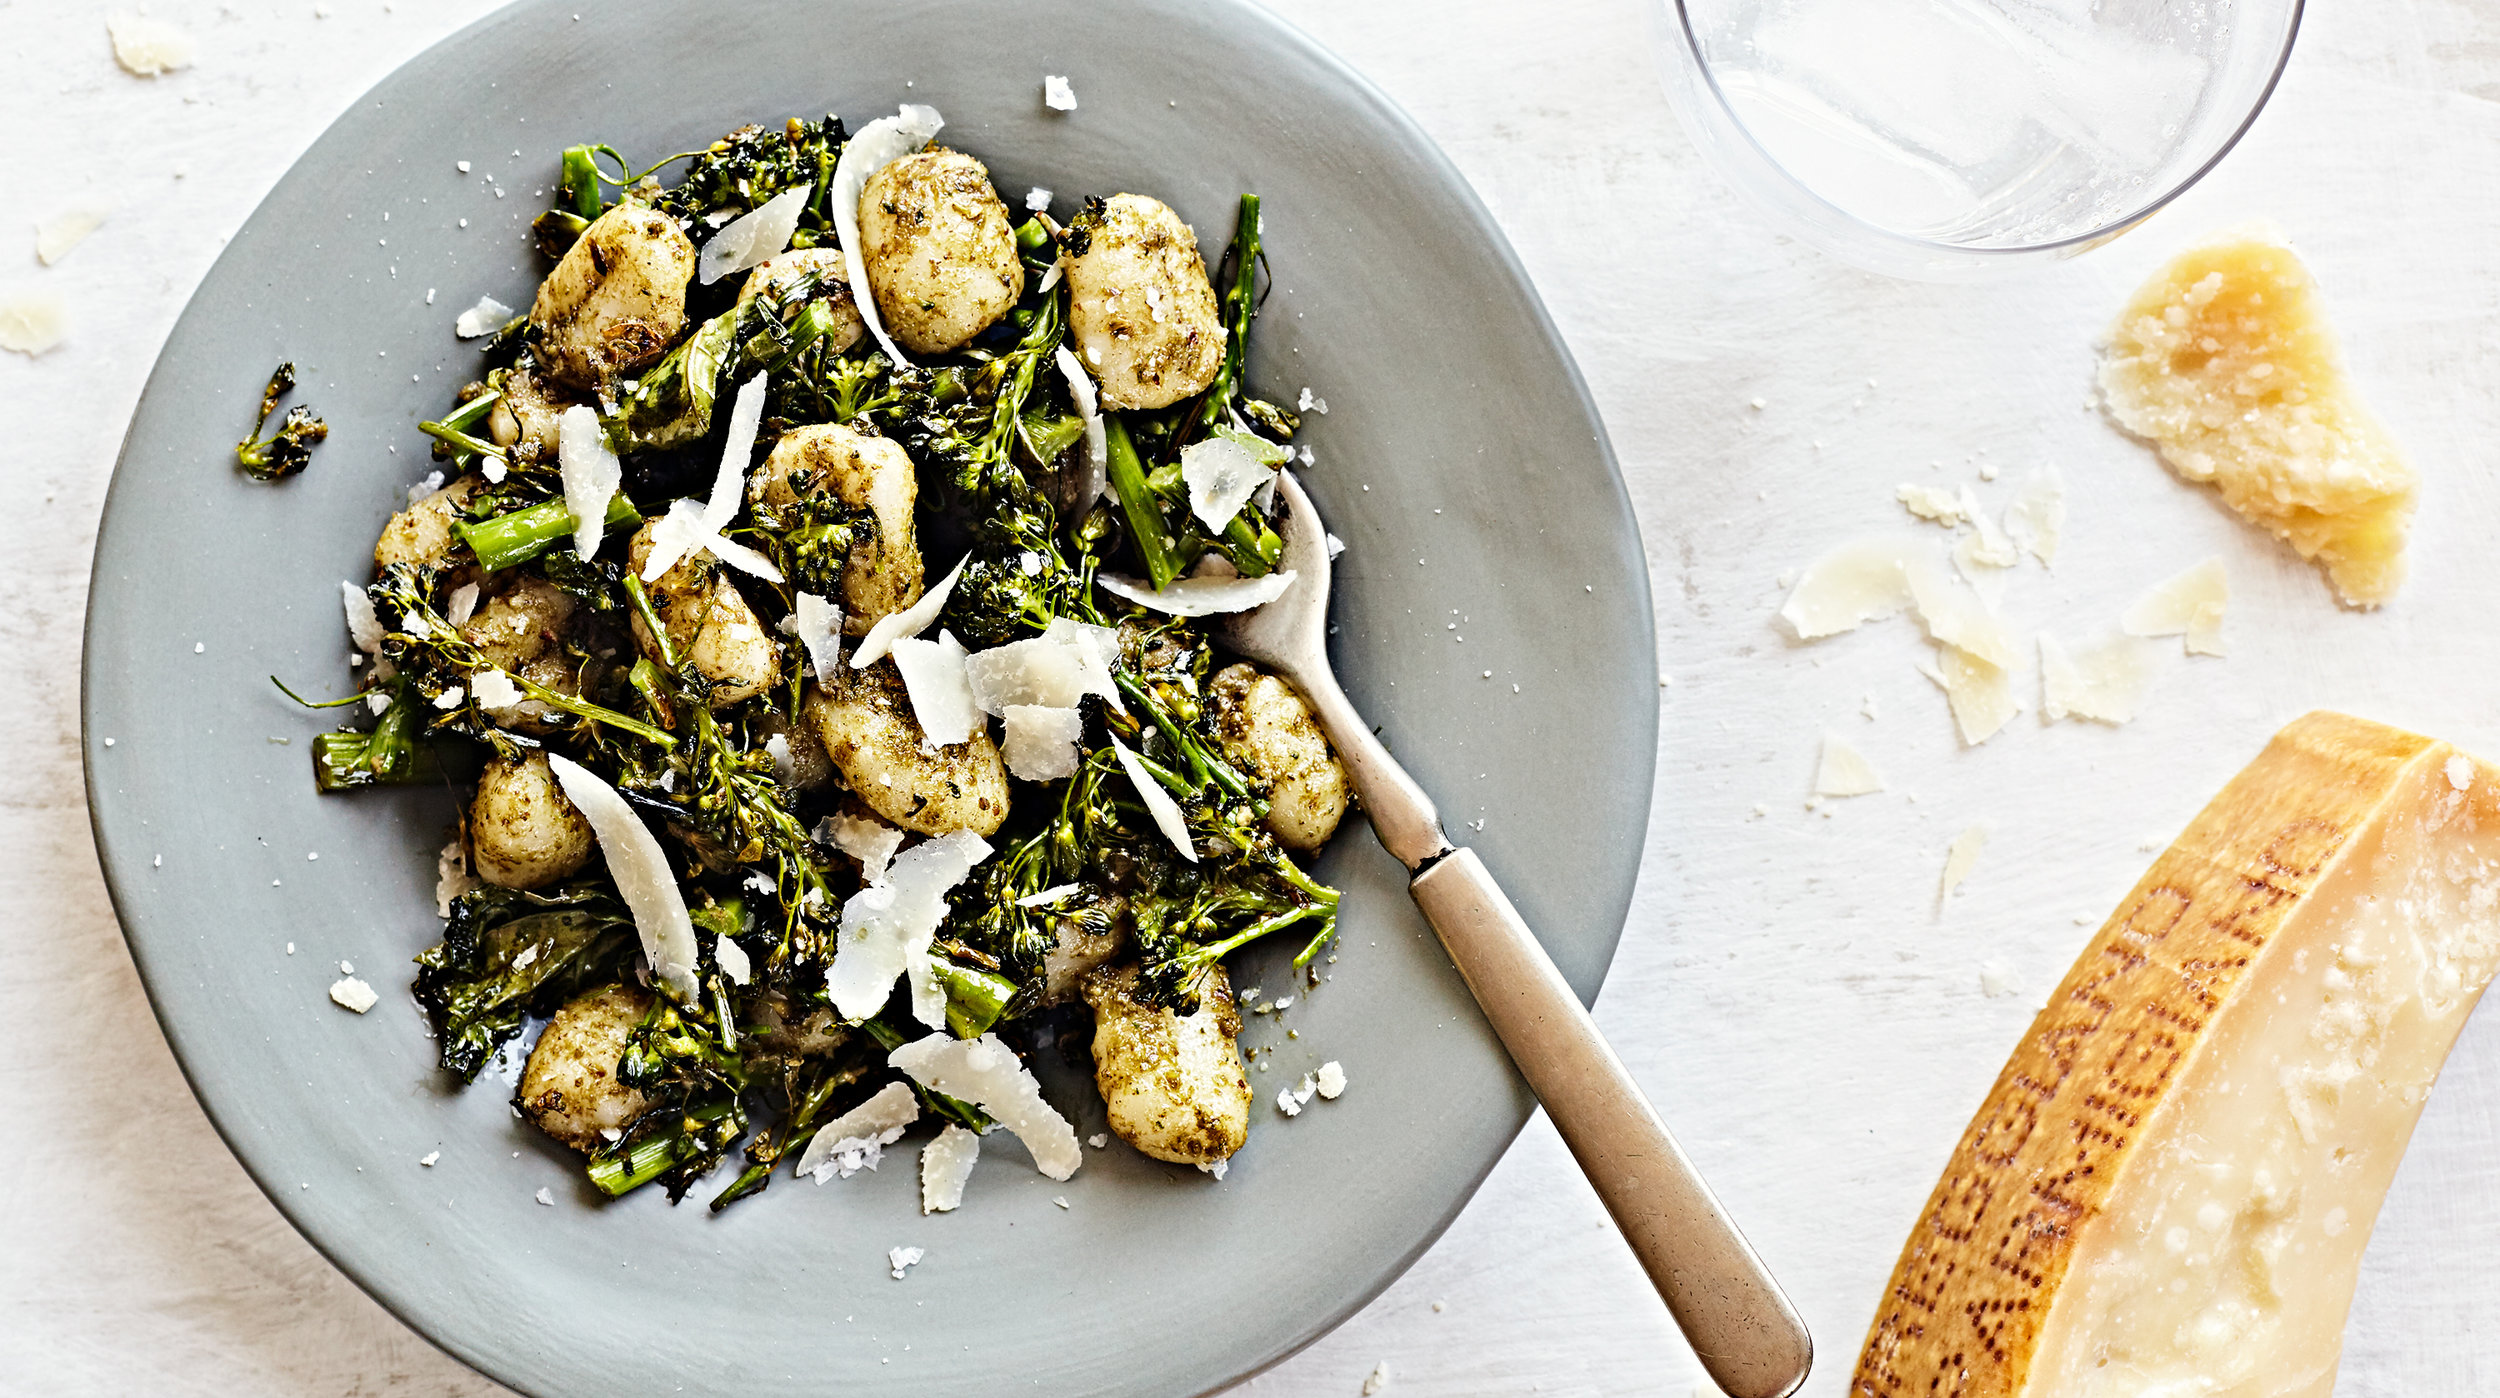 Gluten-free gnocchi with pecan pesto and parmesan cheese